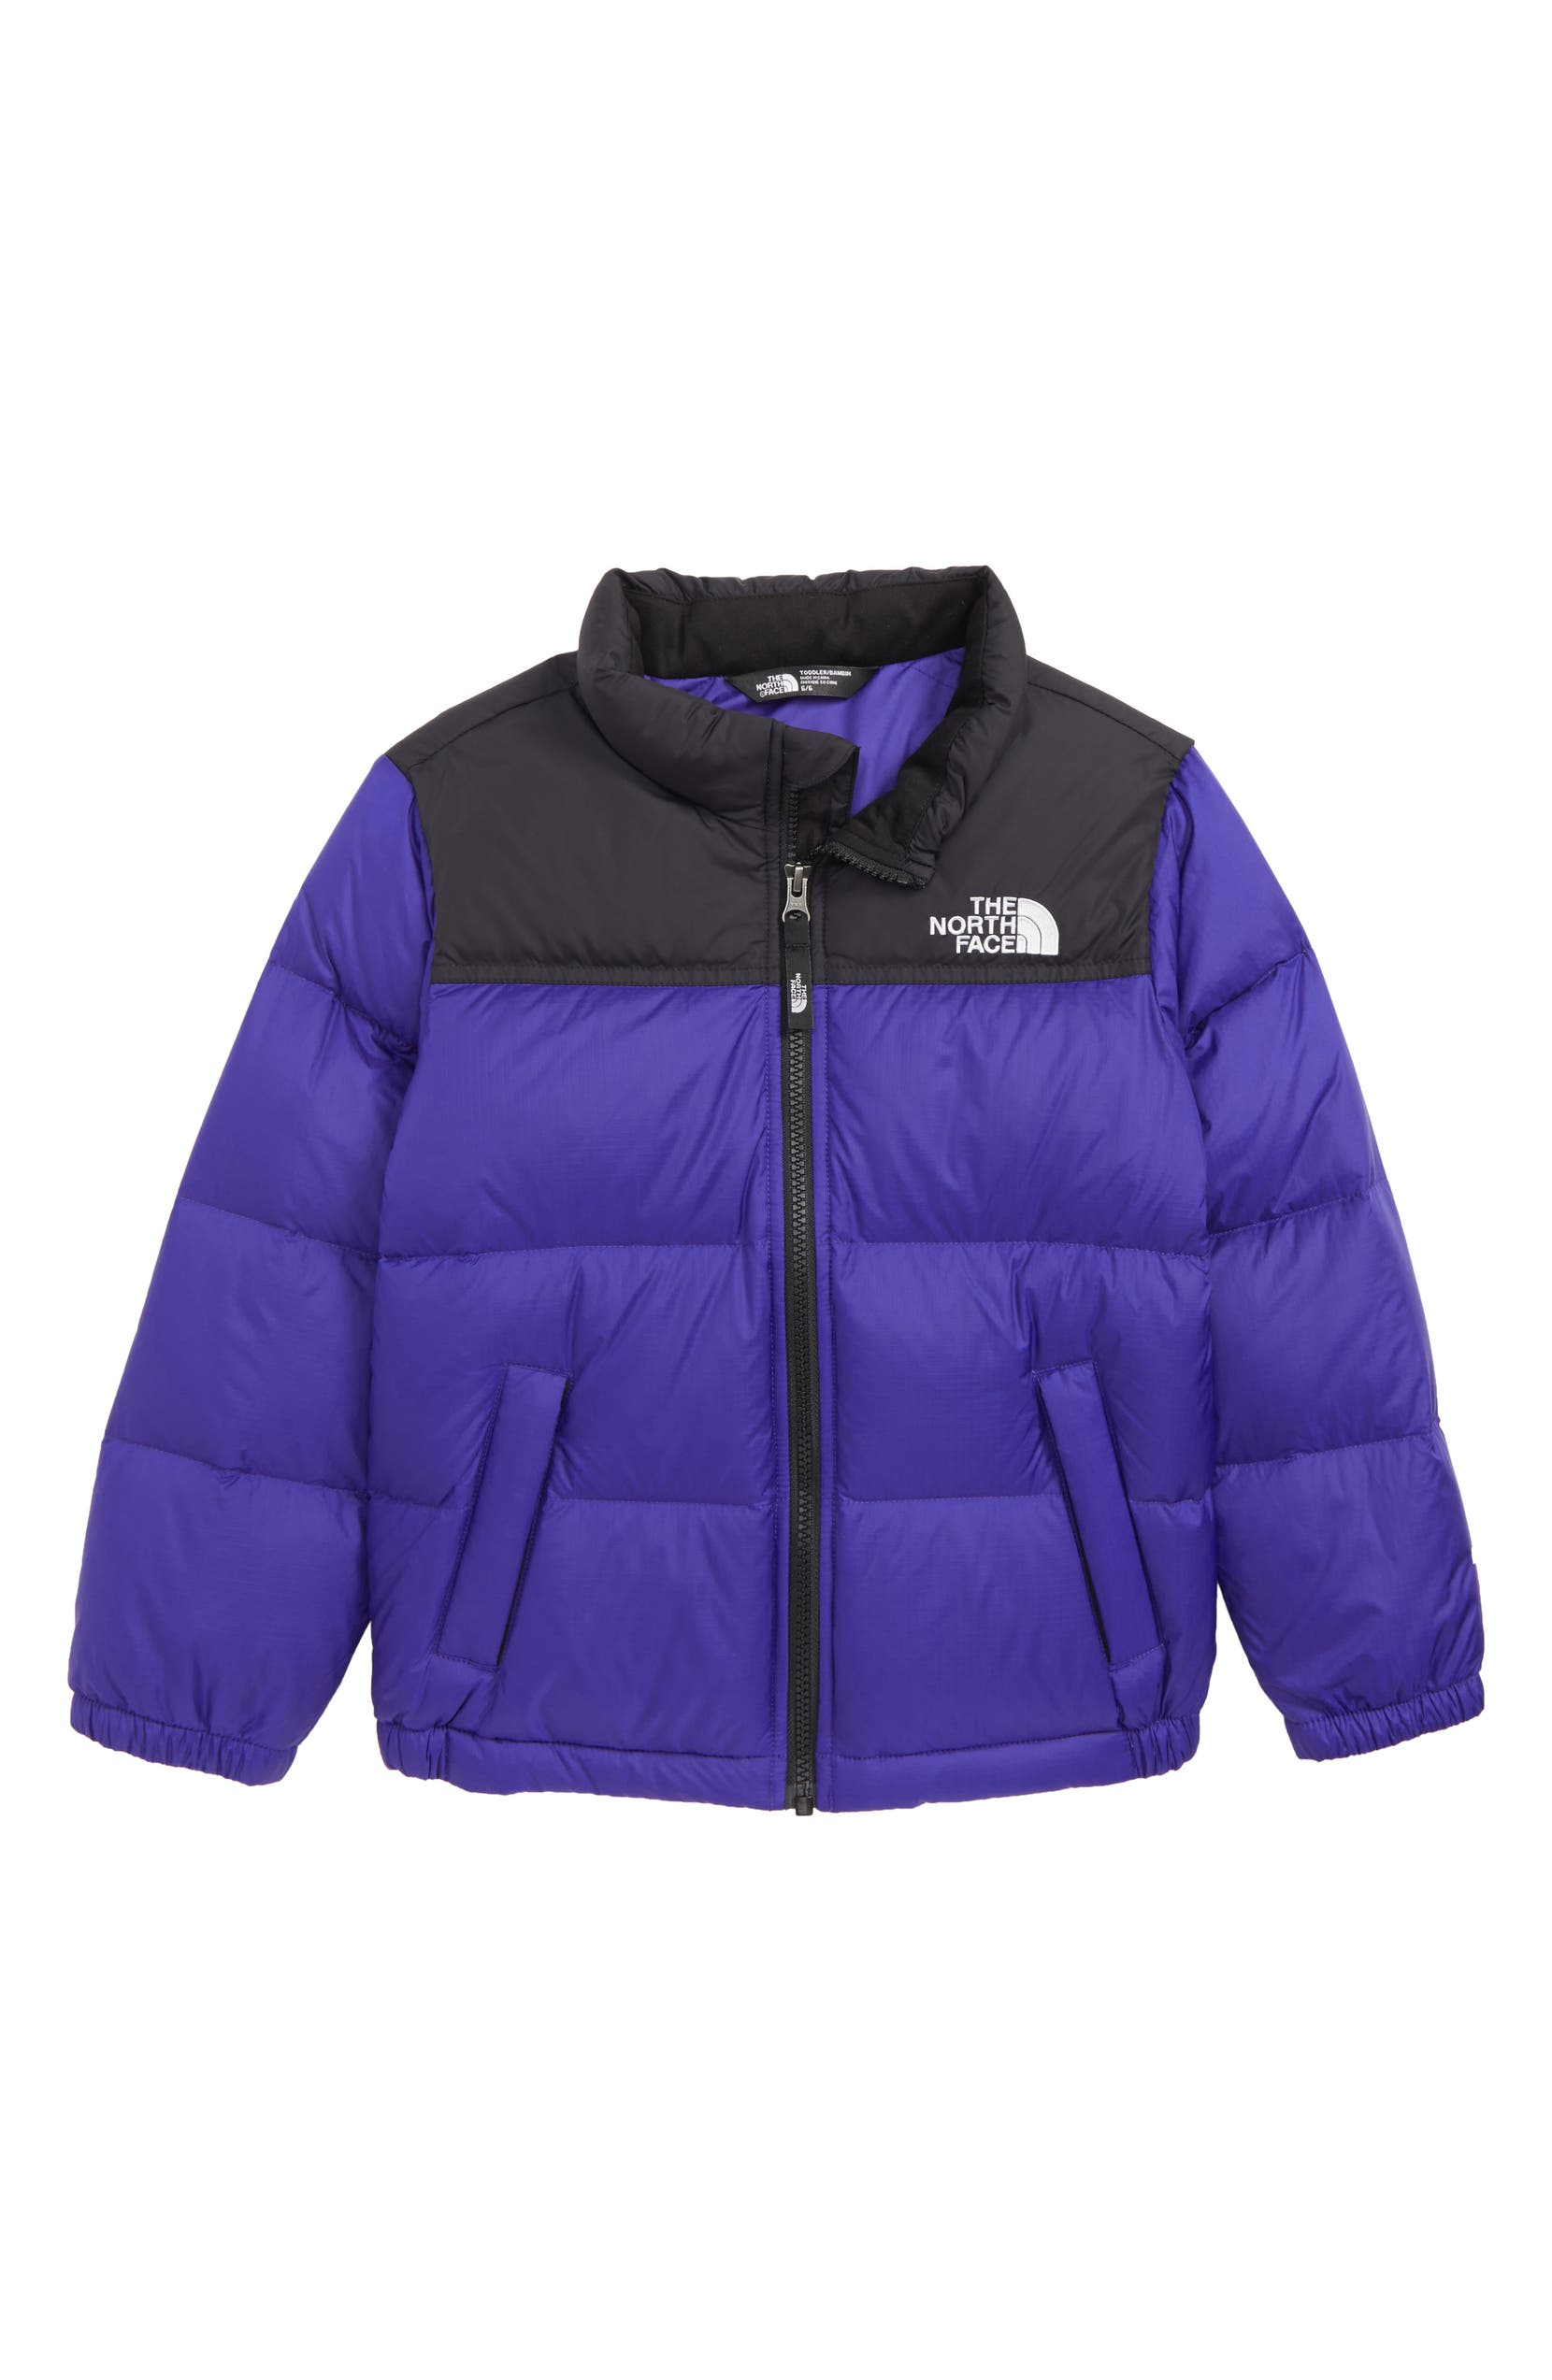 The North Face Nuptse 700 Fill Power Down Jacket (Big Boys)  336cac18d